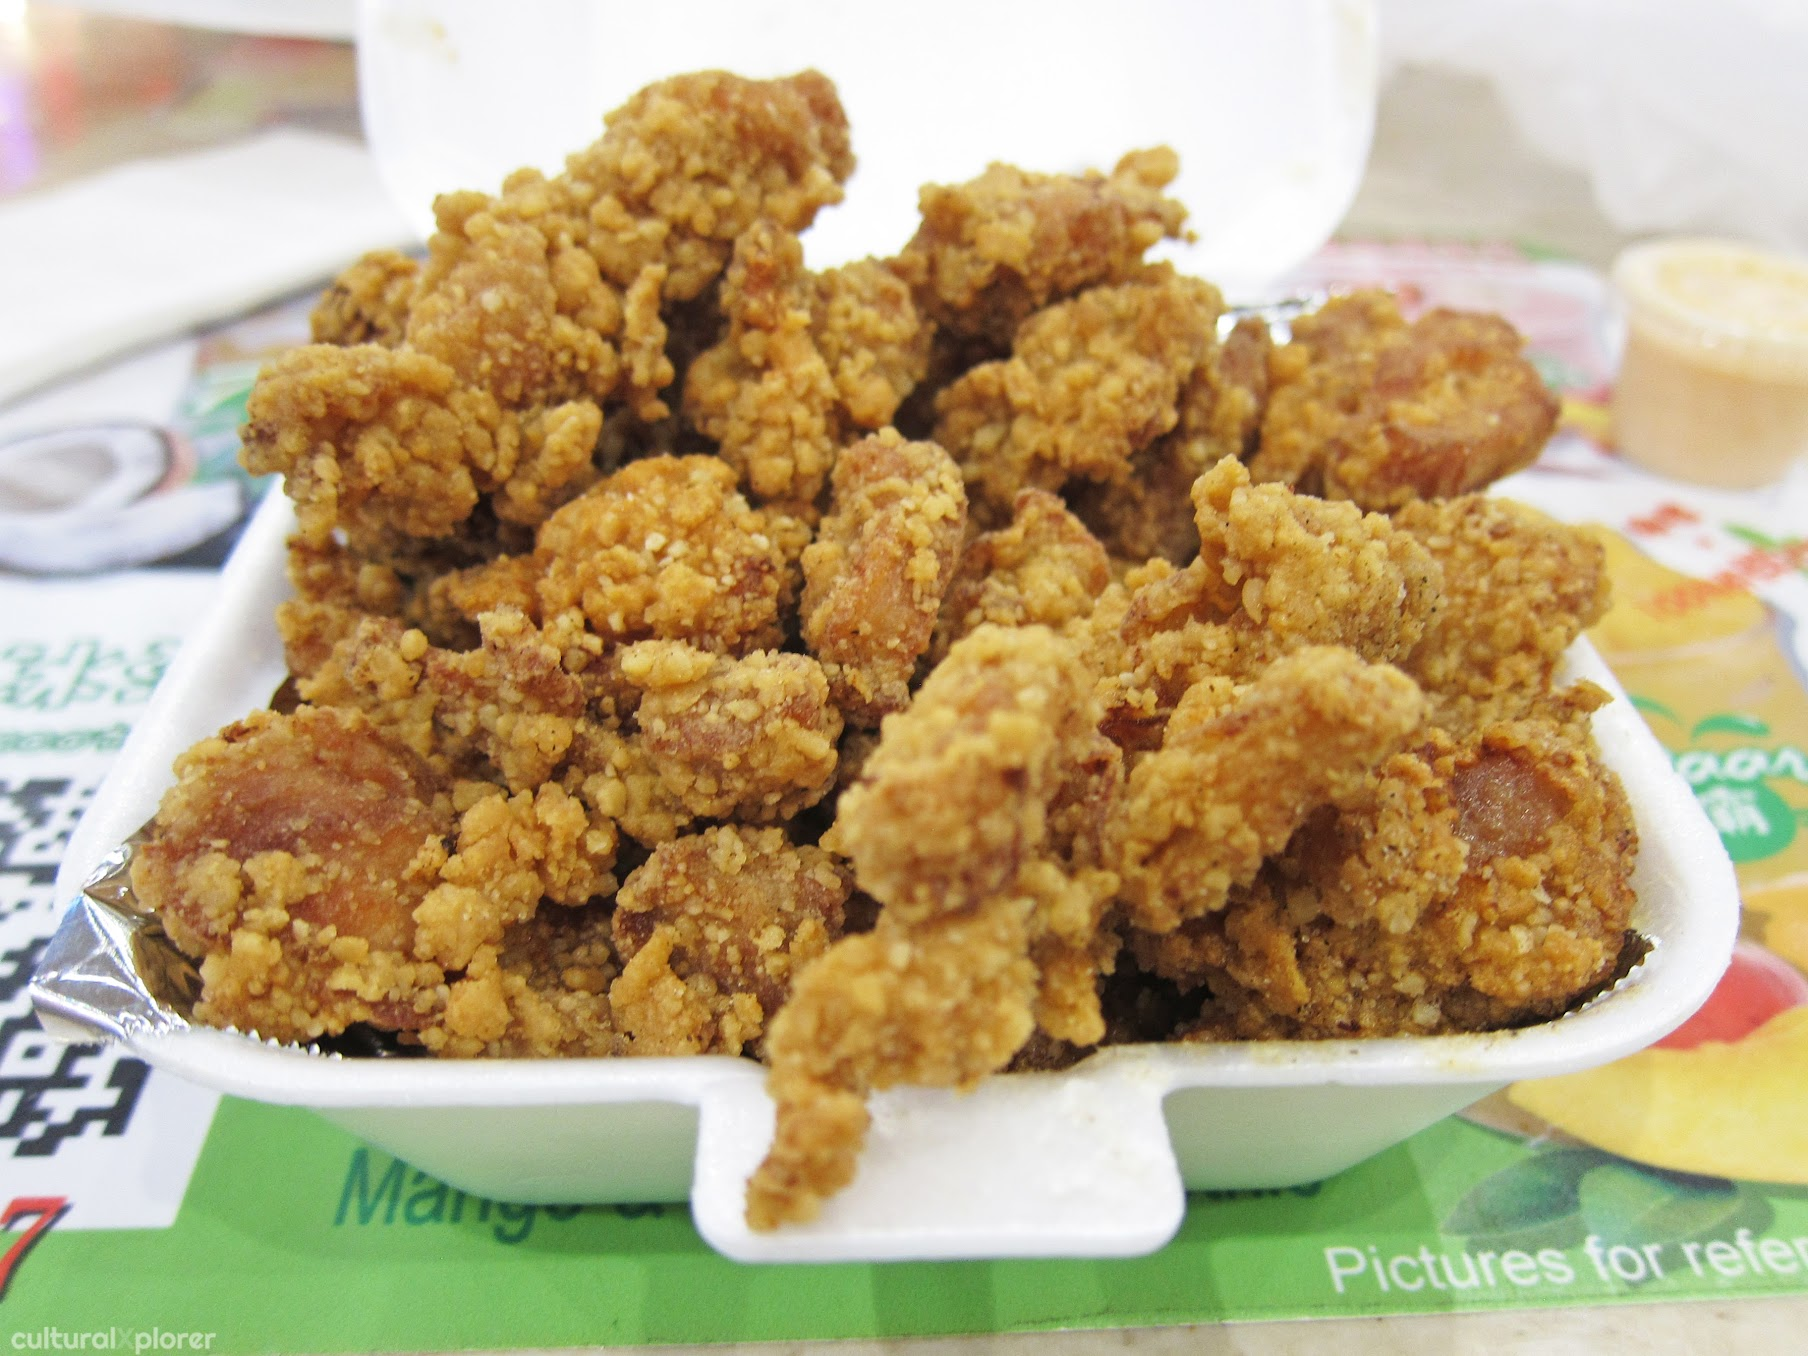 Xiao Yuan Huan Taiwan Market Foods 小圓環 Fried Chicken Flushing